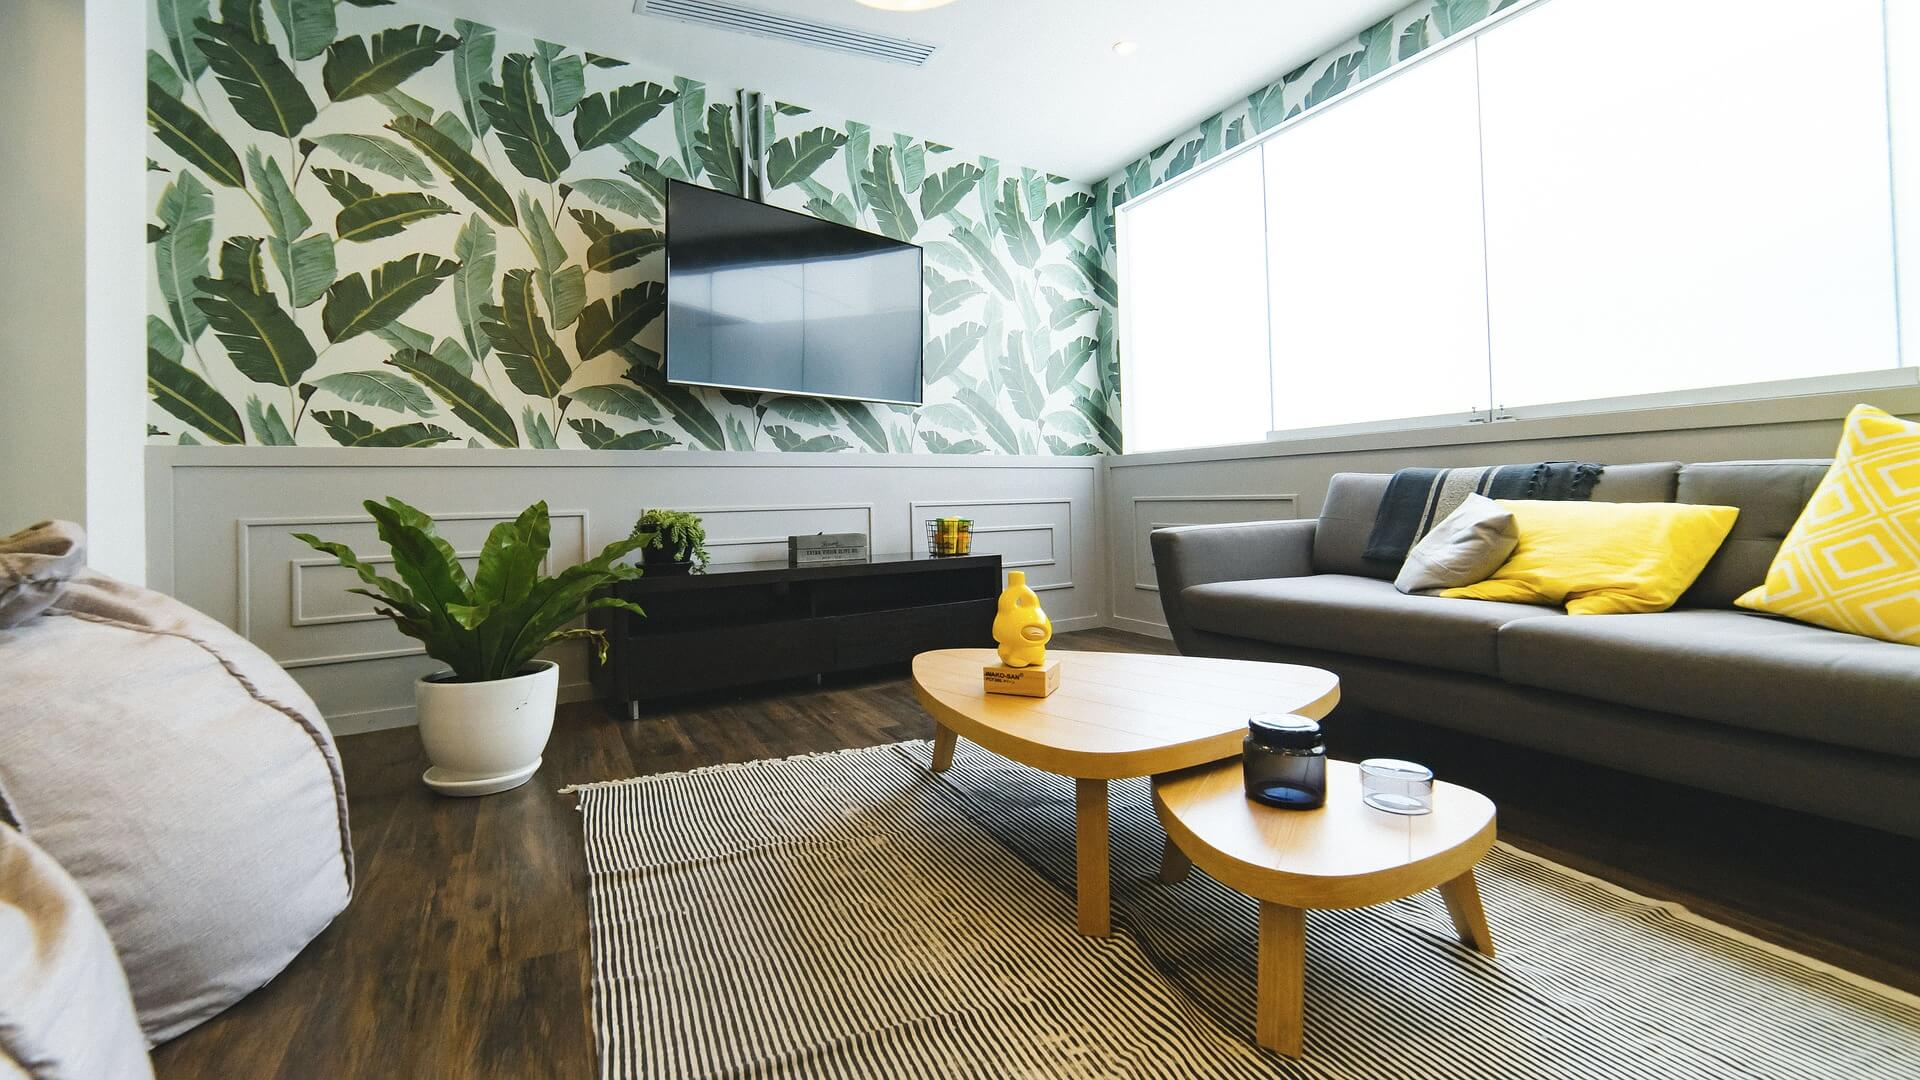 How To Find The Best Interior Designer From UrbanClap